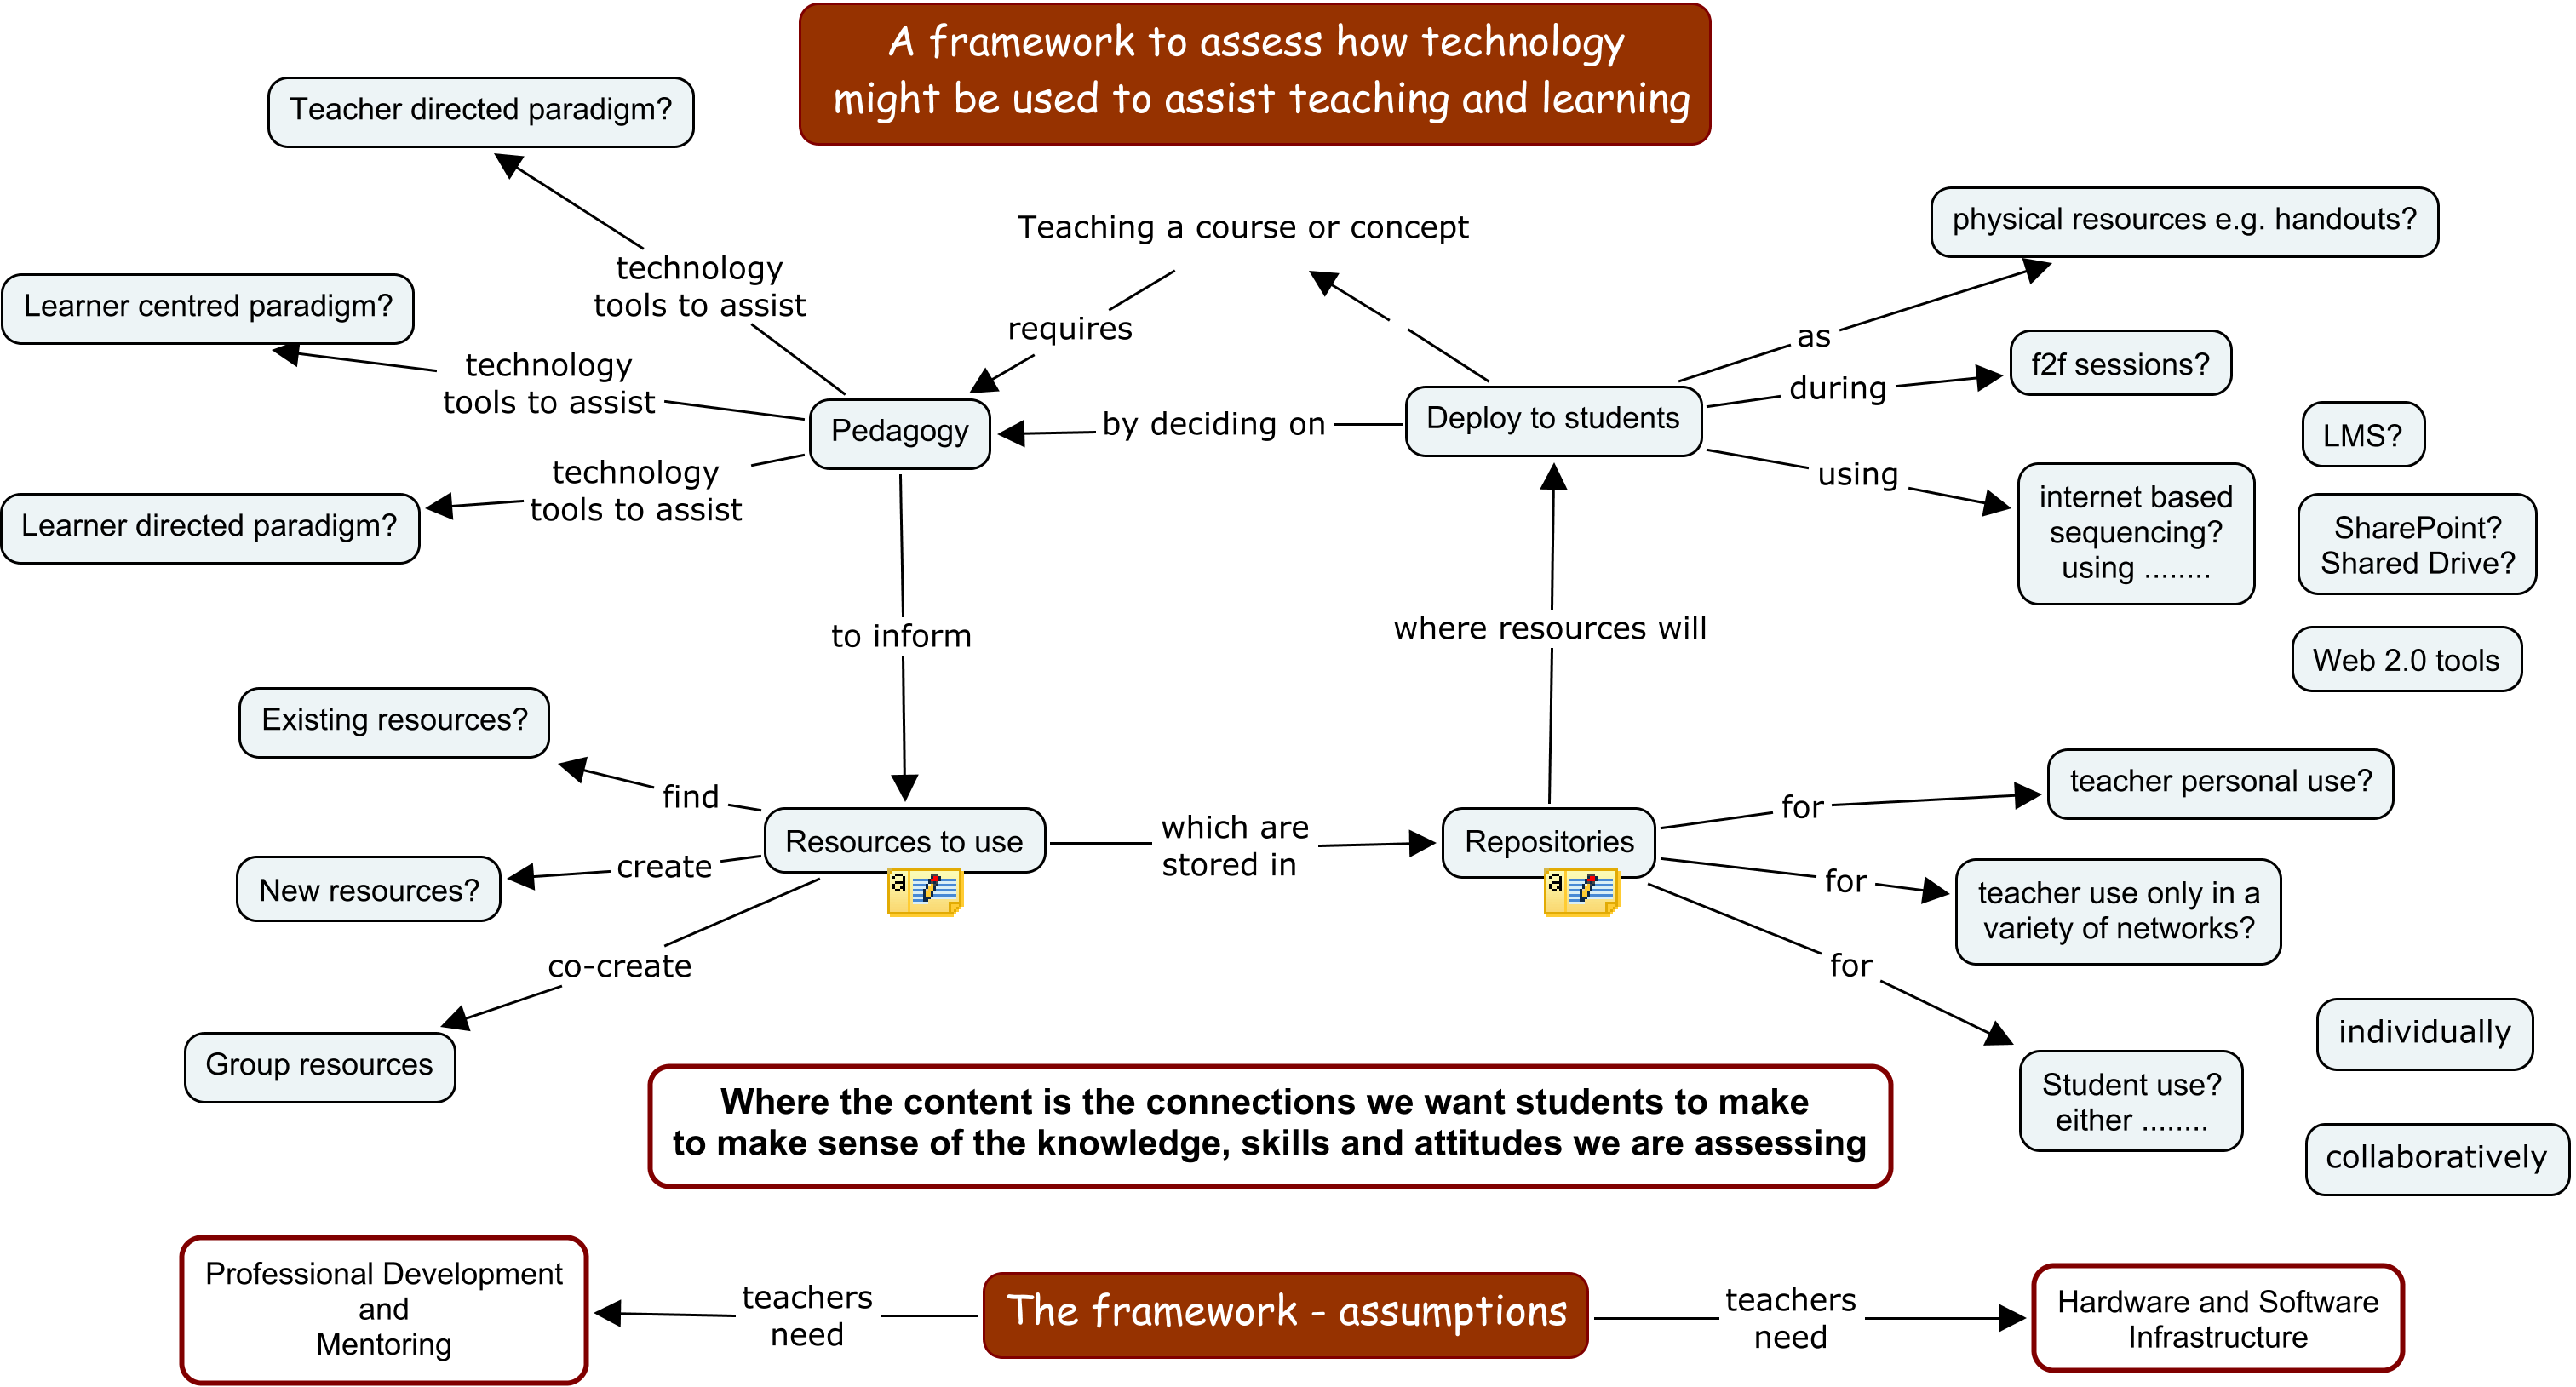 framework-using-technology-in-teaching-and-learning